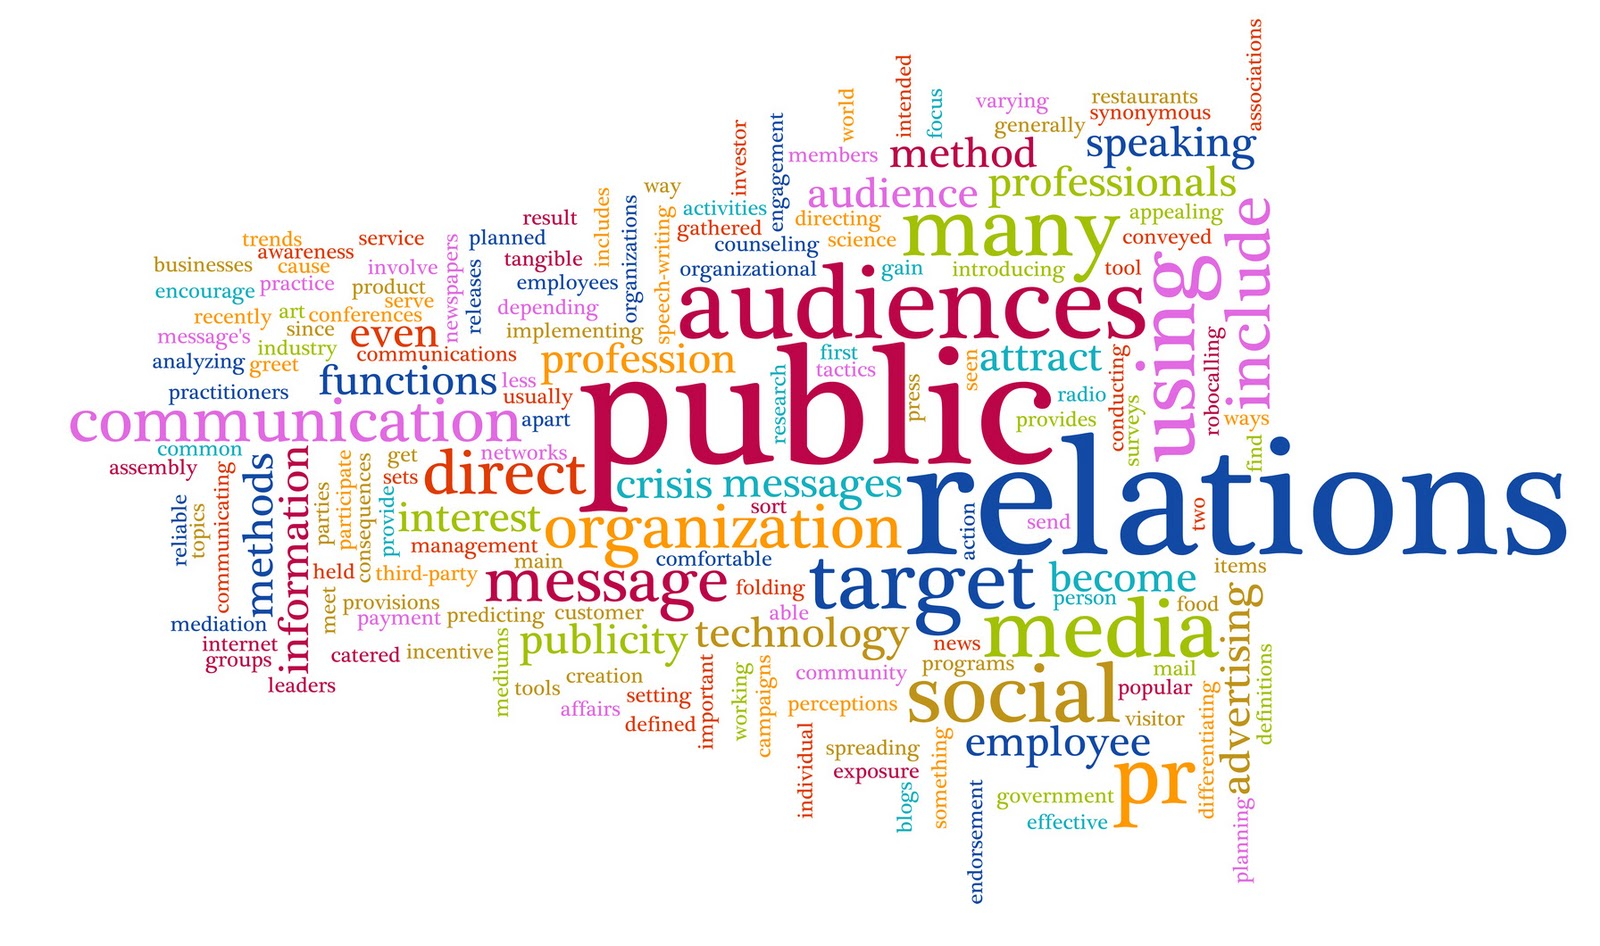 Day-to-Day Tips for Finding Success in PR